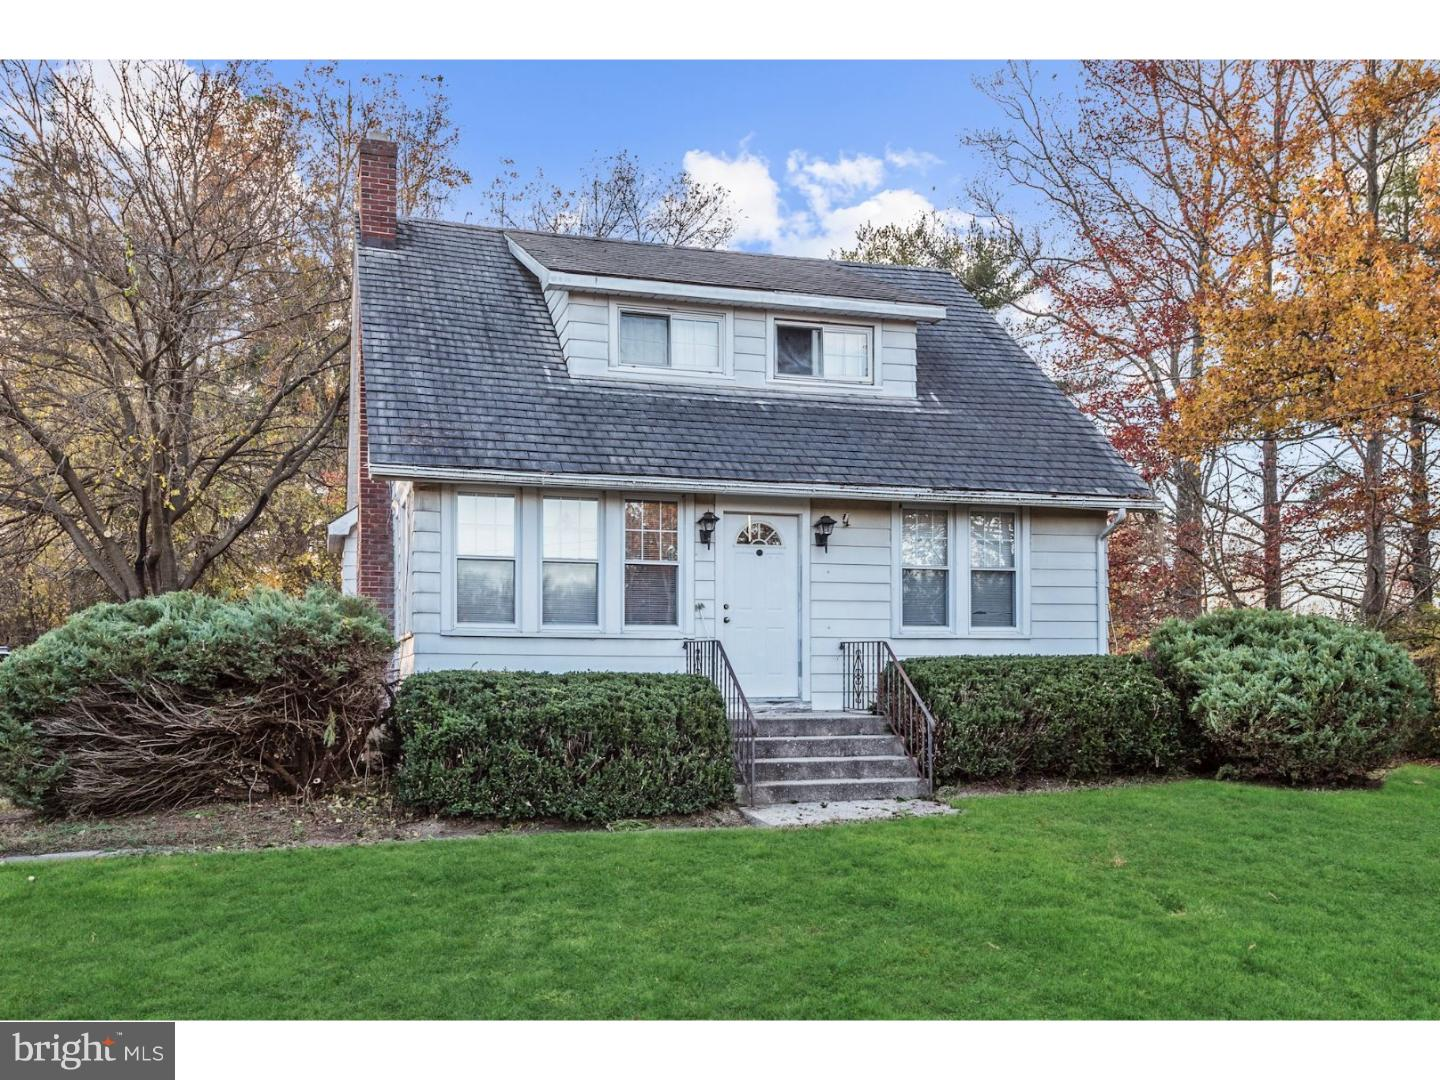 for Sale at Medford Township, New Jersey 08055 United States